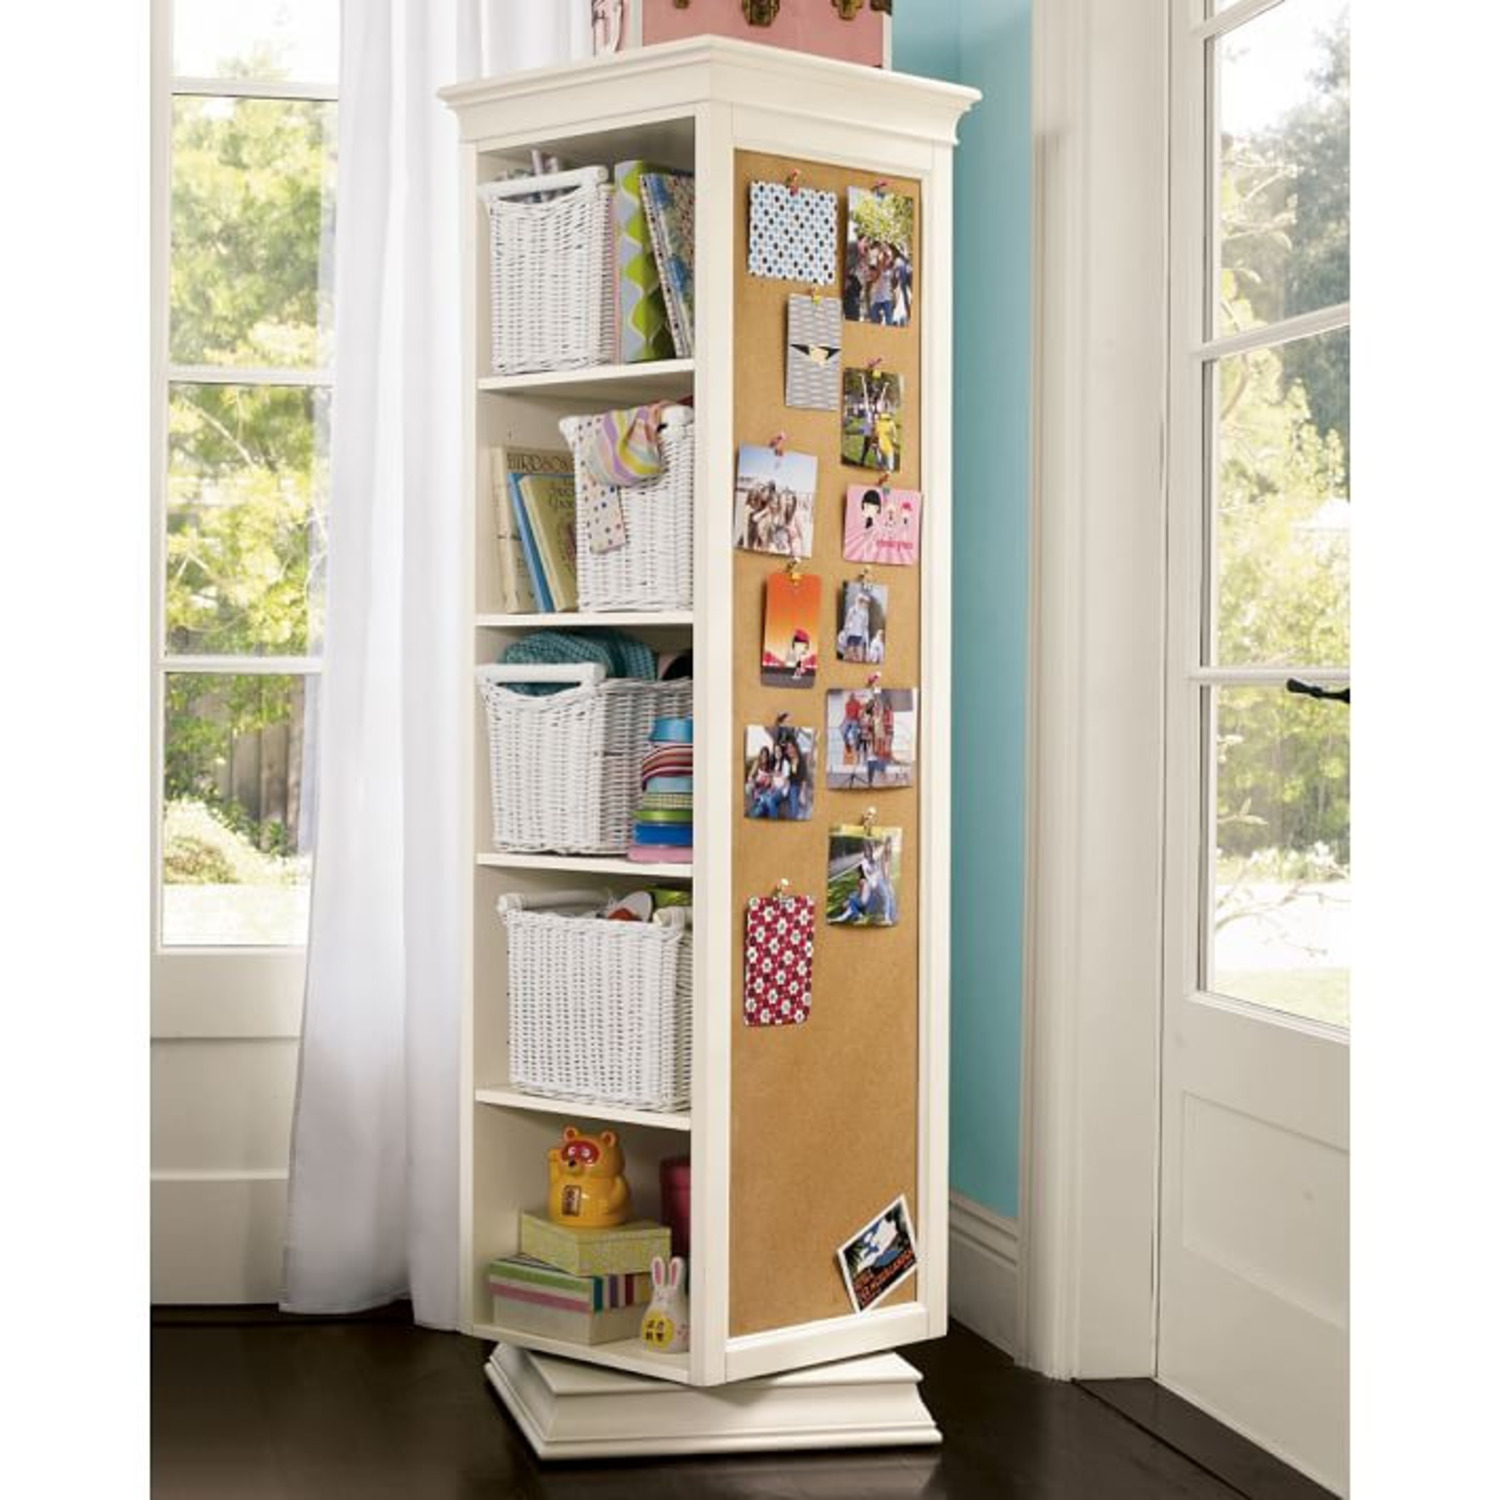 Pottery Barn Display-It Rotating Bookcase w/Mirror - image-1